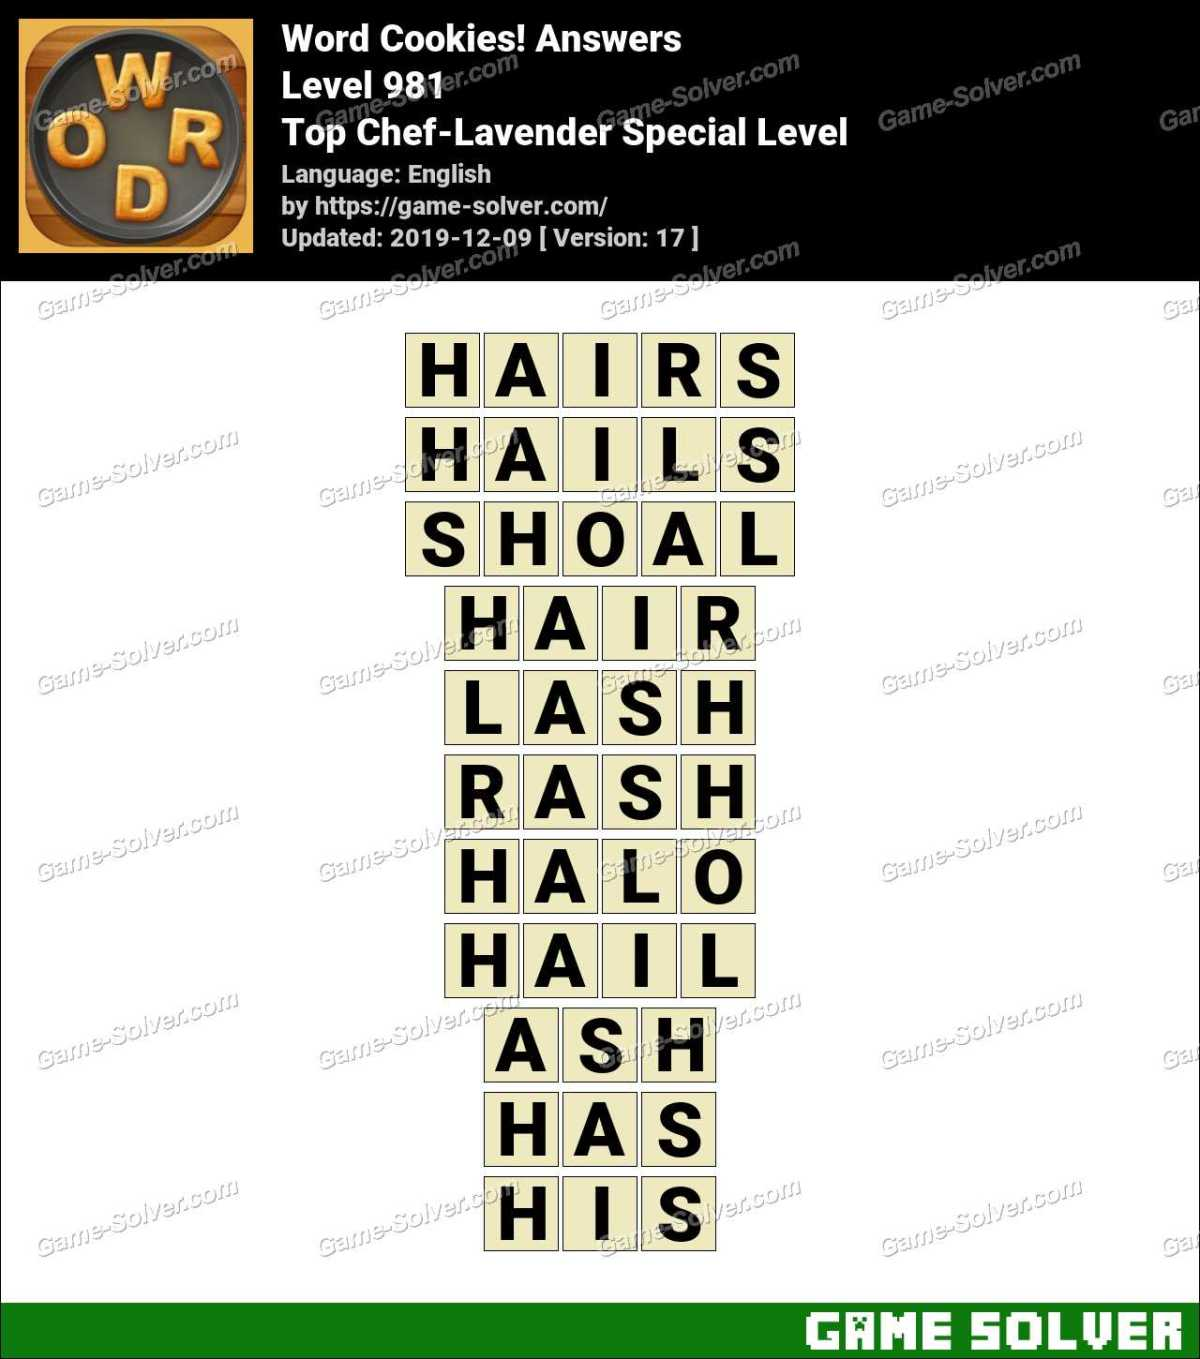 Word Cookies Top Chef-Lavender Special Level Answers